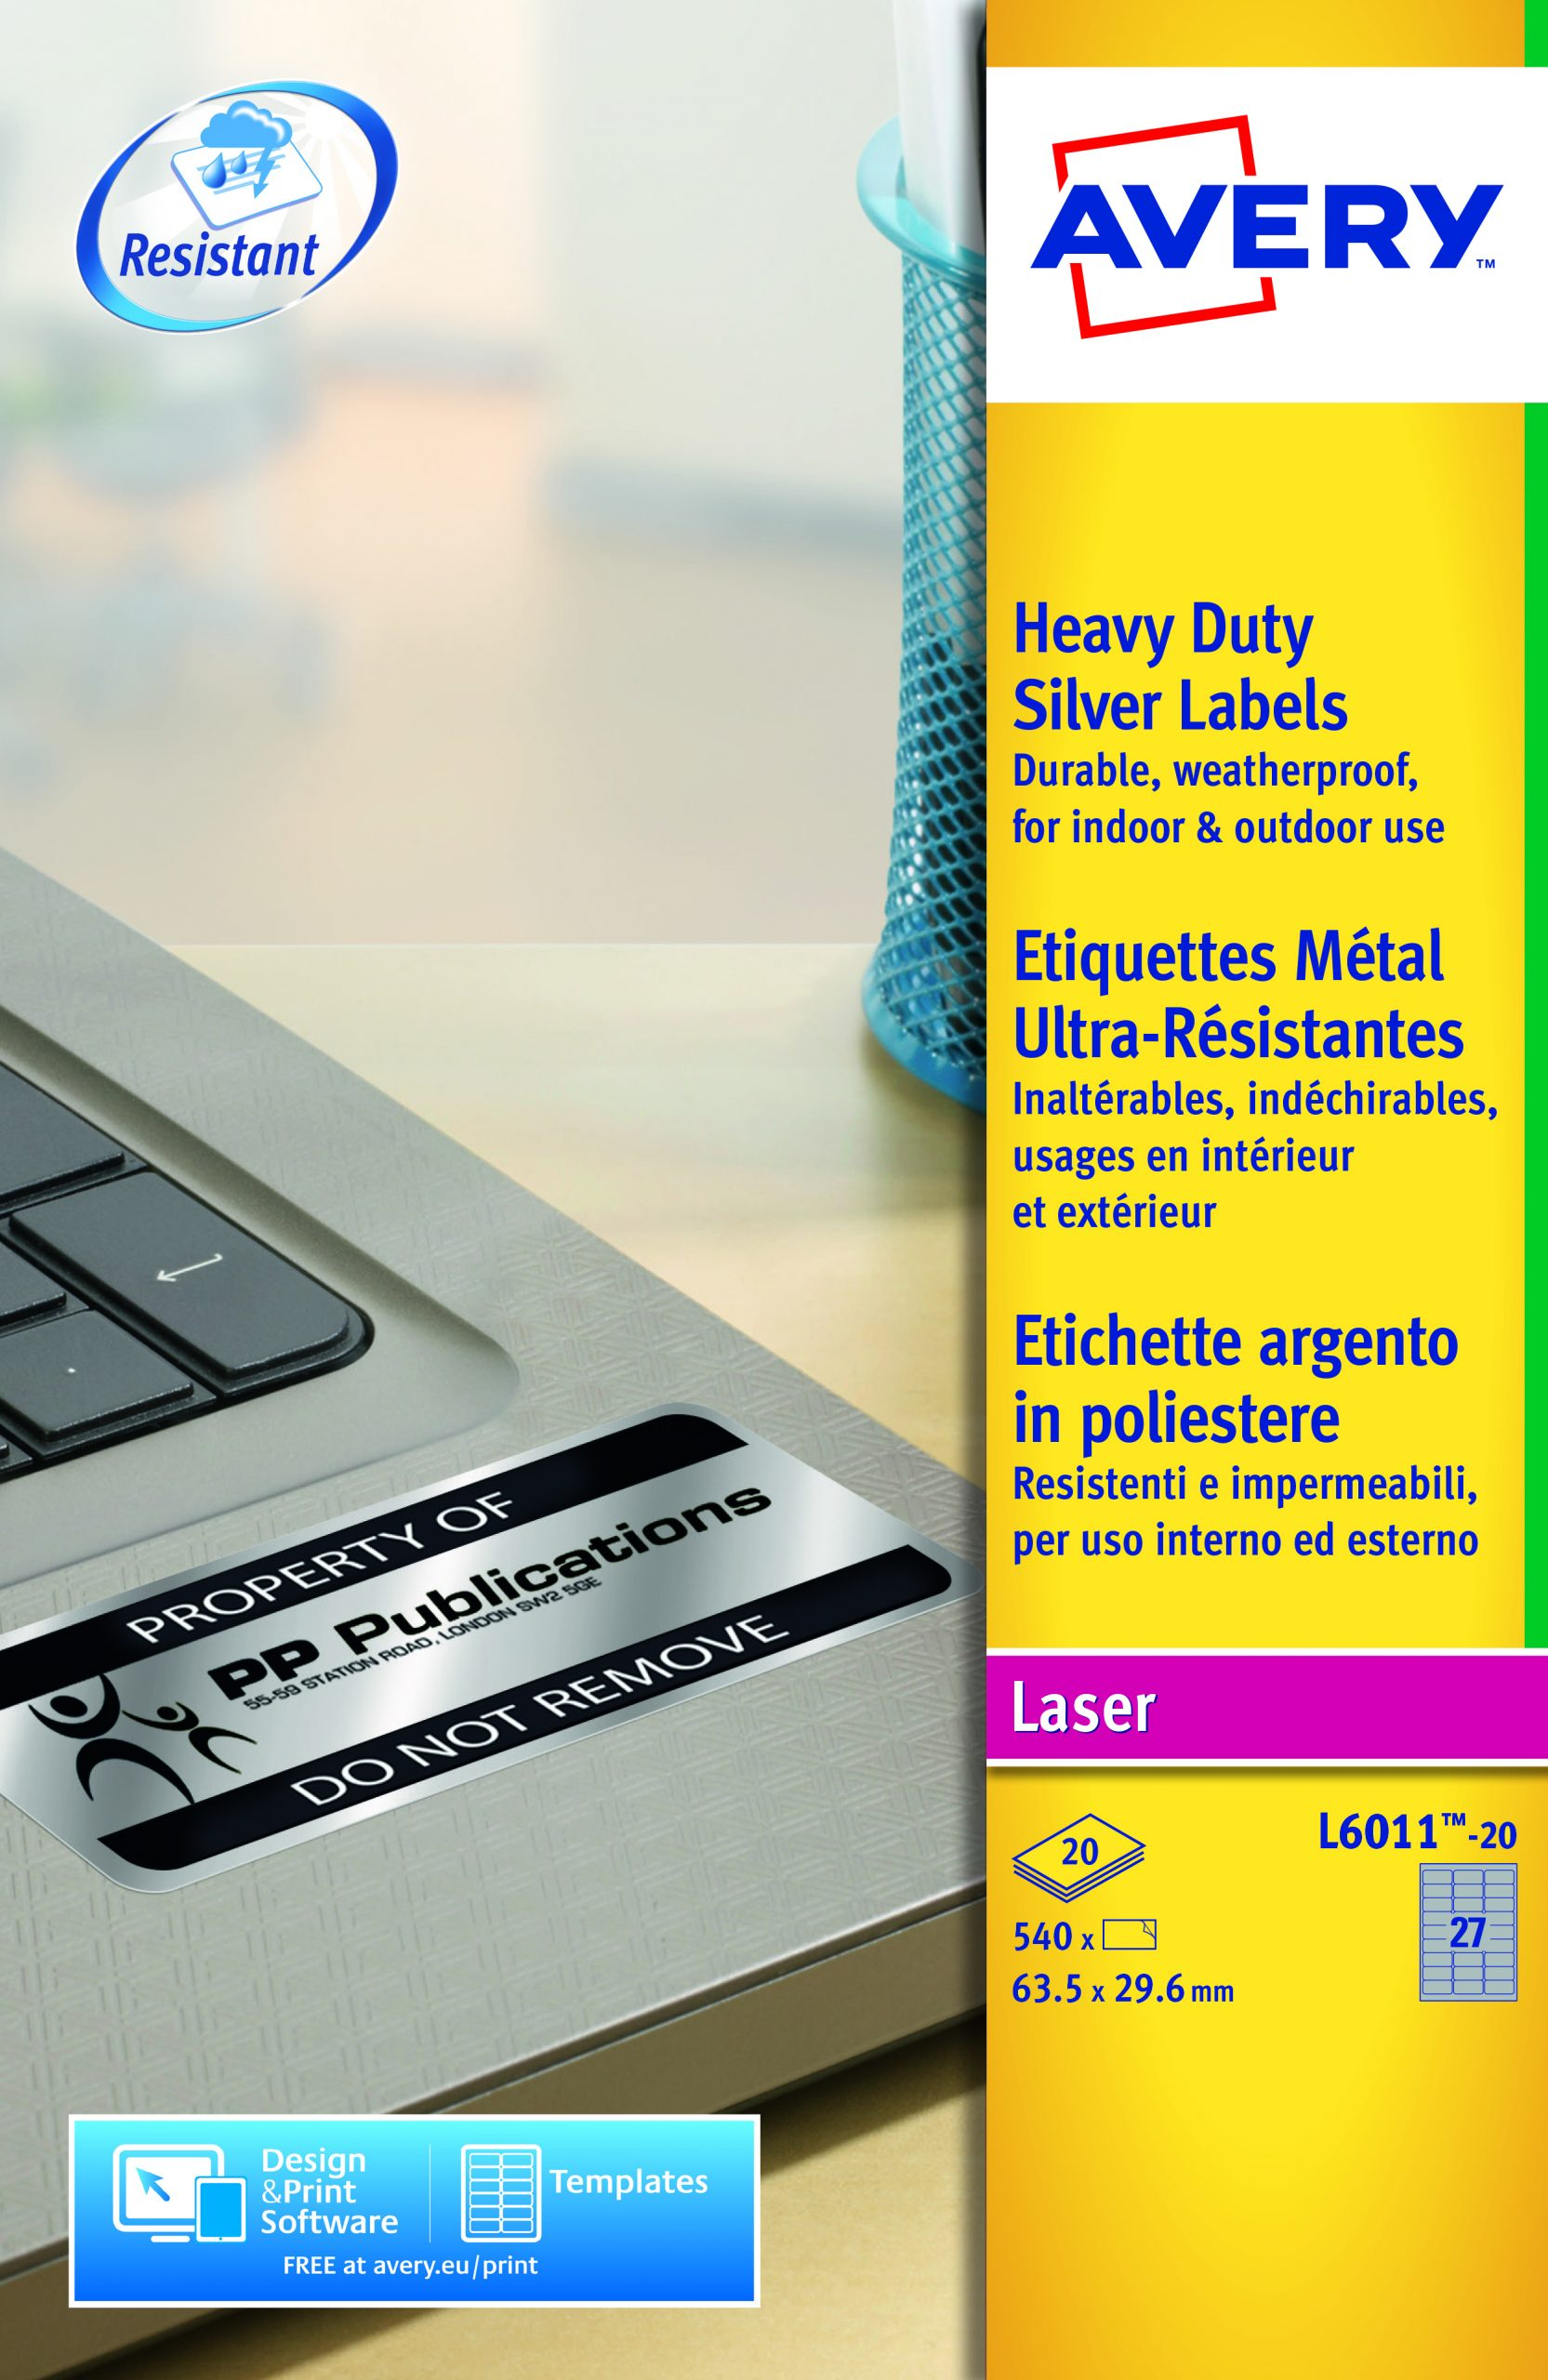 Avery Hd Label 63 5x29 6mm Silver L6011 20 27 P Sheet Pk540 Armarox Com